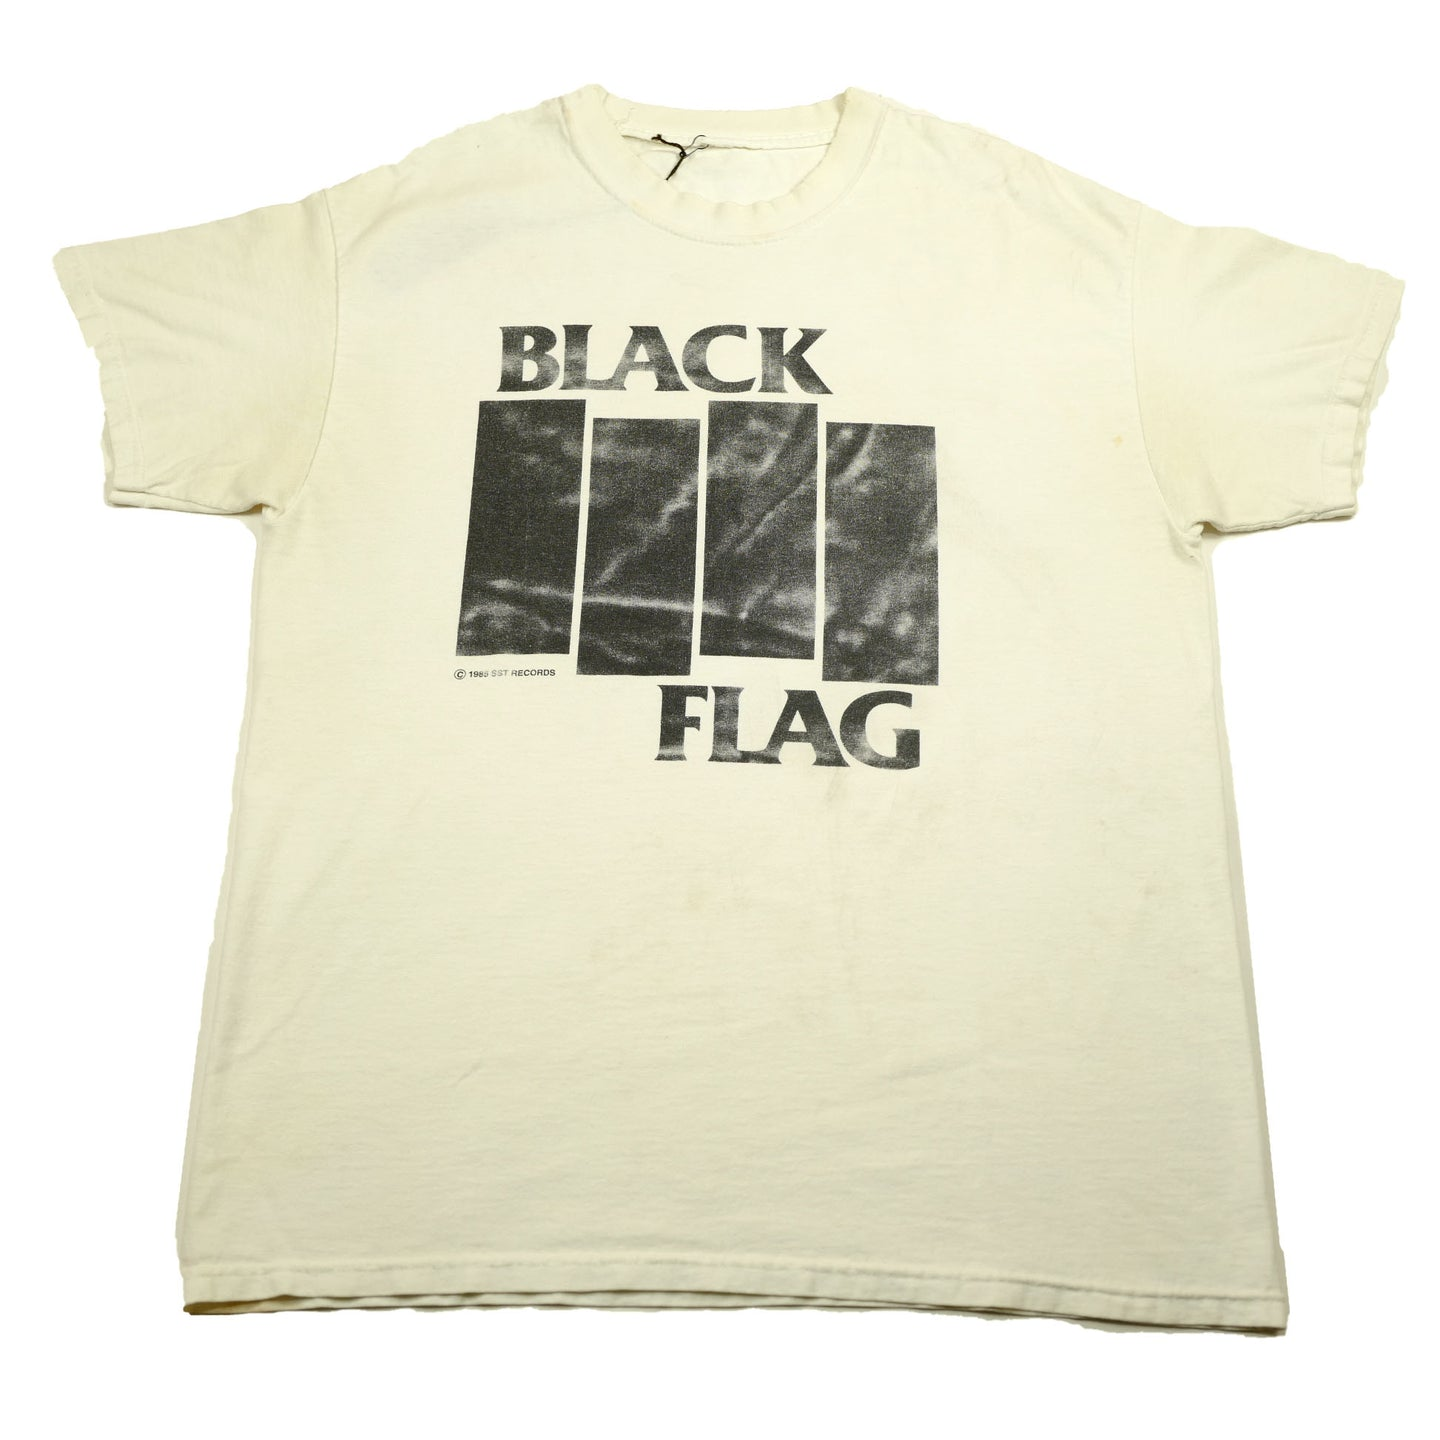 Vintage SST Records Black Flag Tee